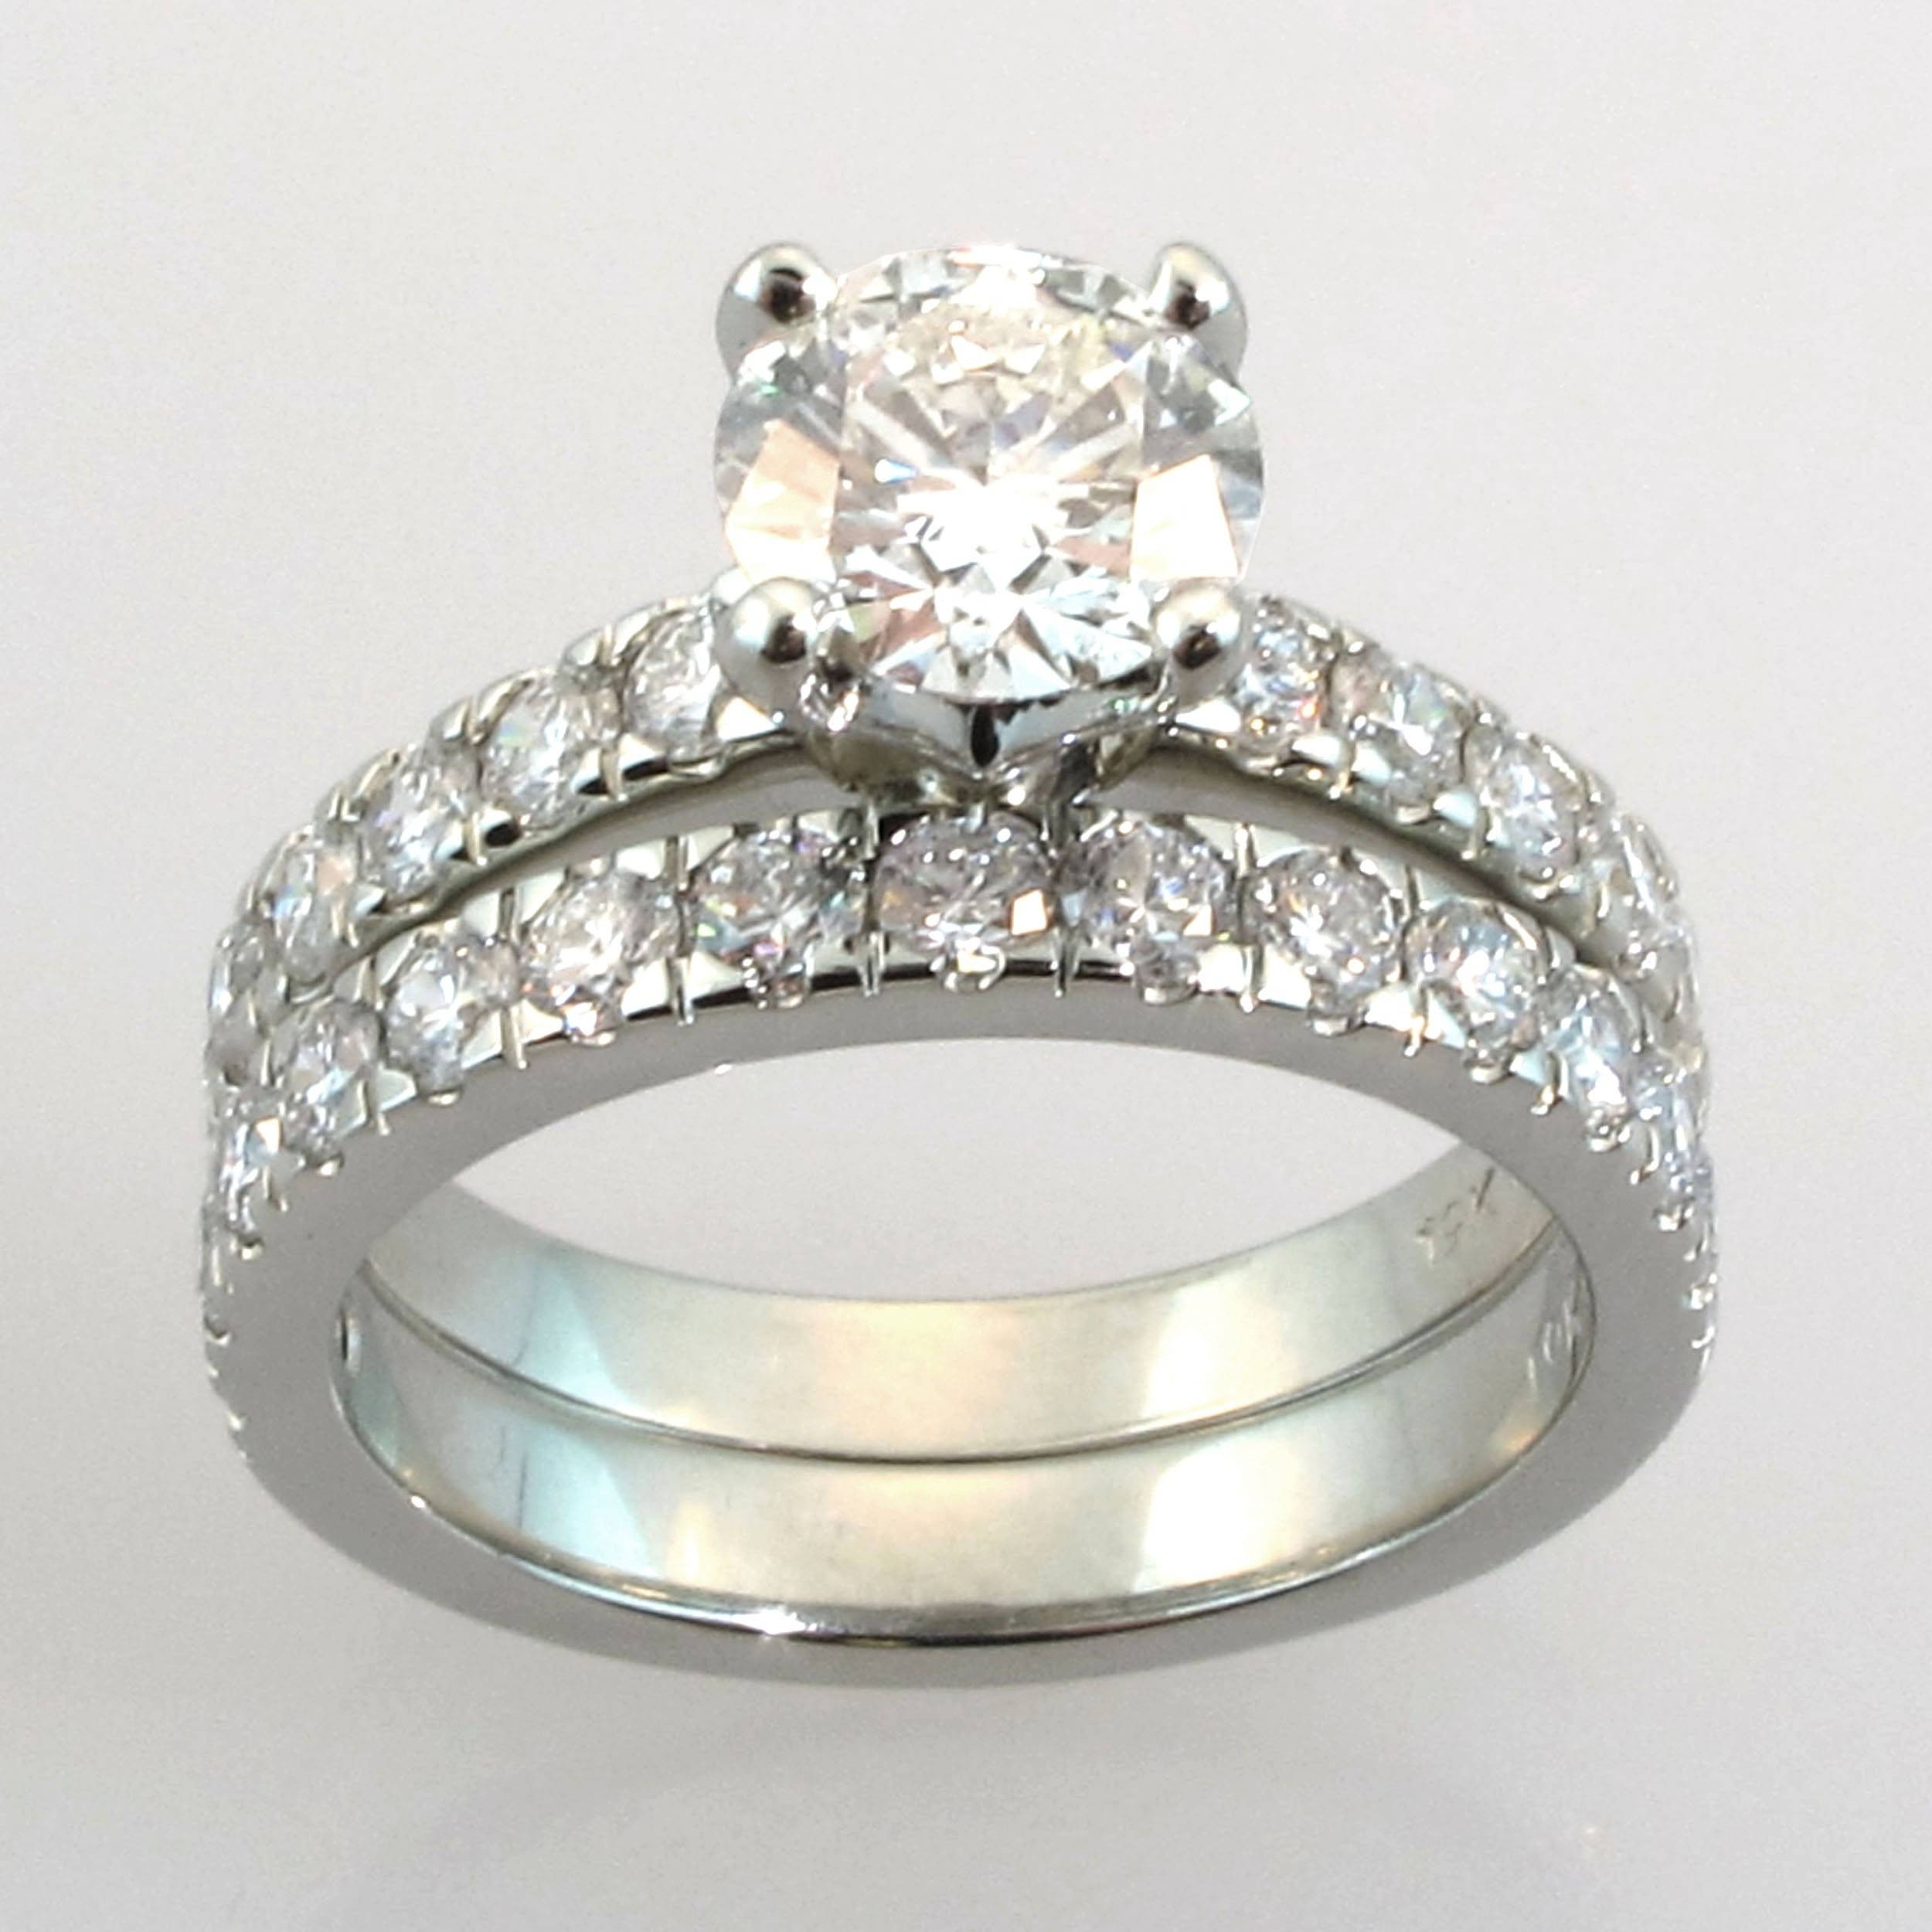 Wedding Engagement Ring Sets | Eternity Jewelry Throughout Gold Engagement And Wedding Rings (View 11 of 15)